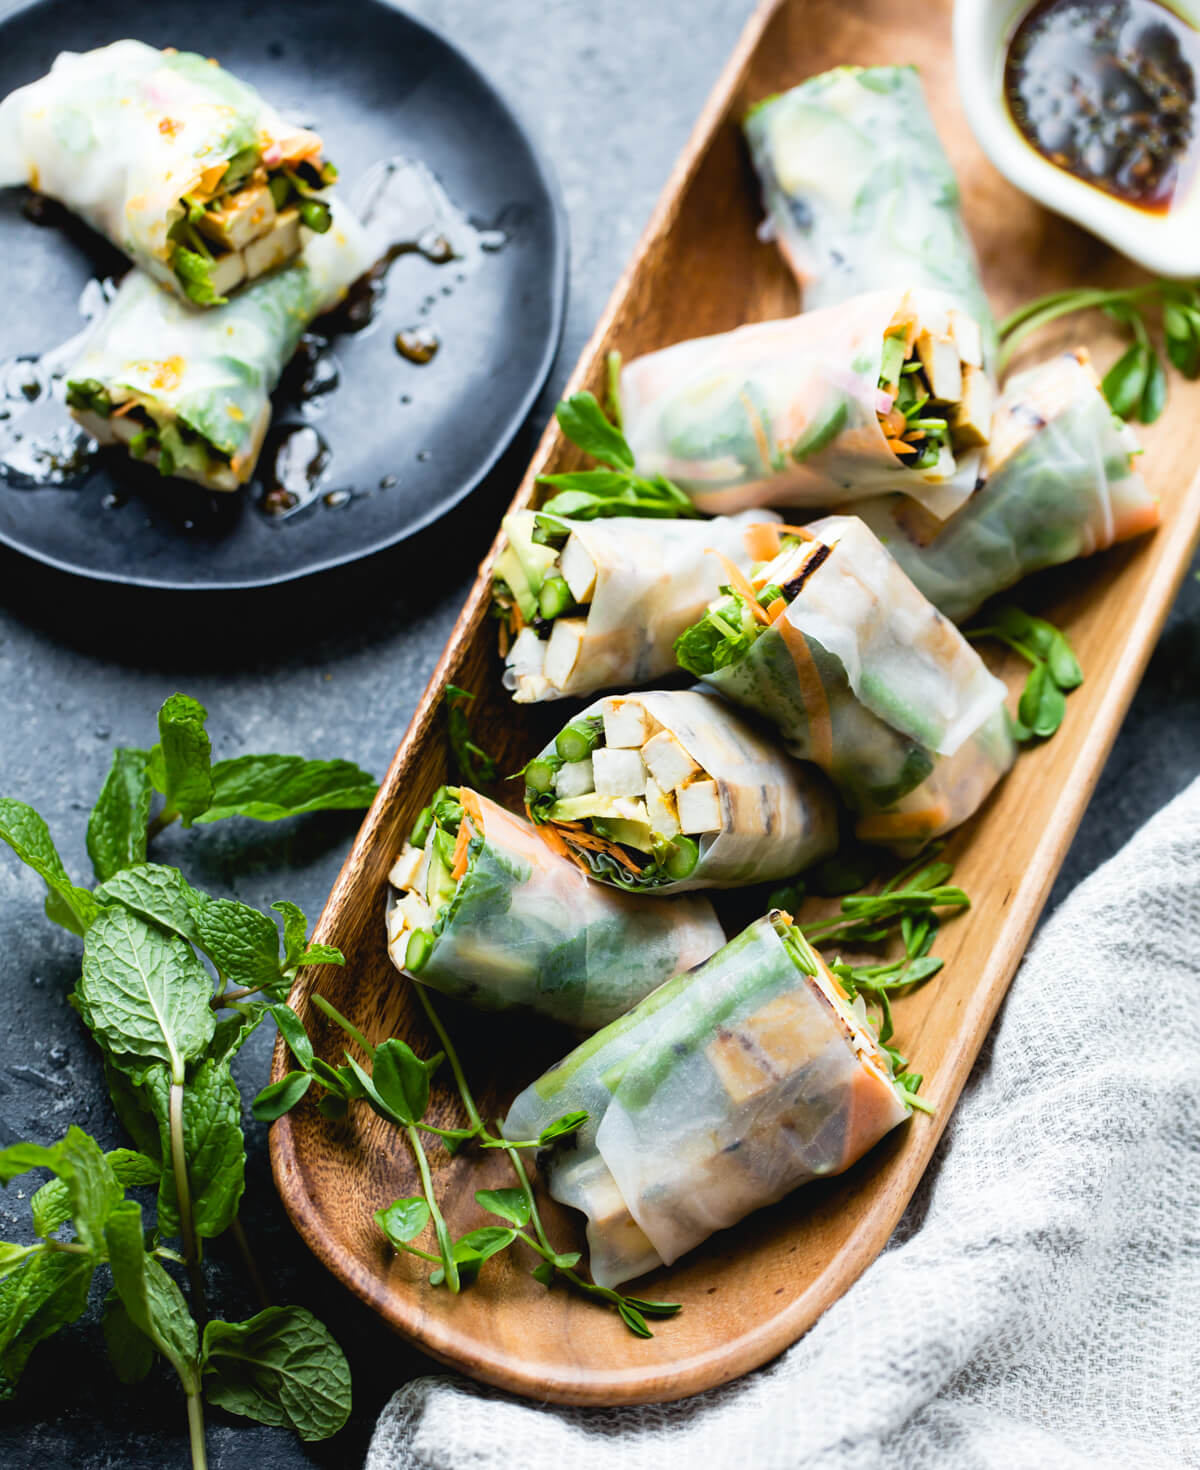 """Vegan Grilled Asparagus Tofu Spring Rolls // What's better for dinner than protein-rich tofu and veggies? These satisfying """"updated"""" spring rolls are definitely a go-to meal for cleansing your body. So tasty and crunchy; it's an instant favorite. 